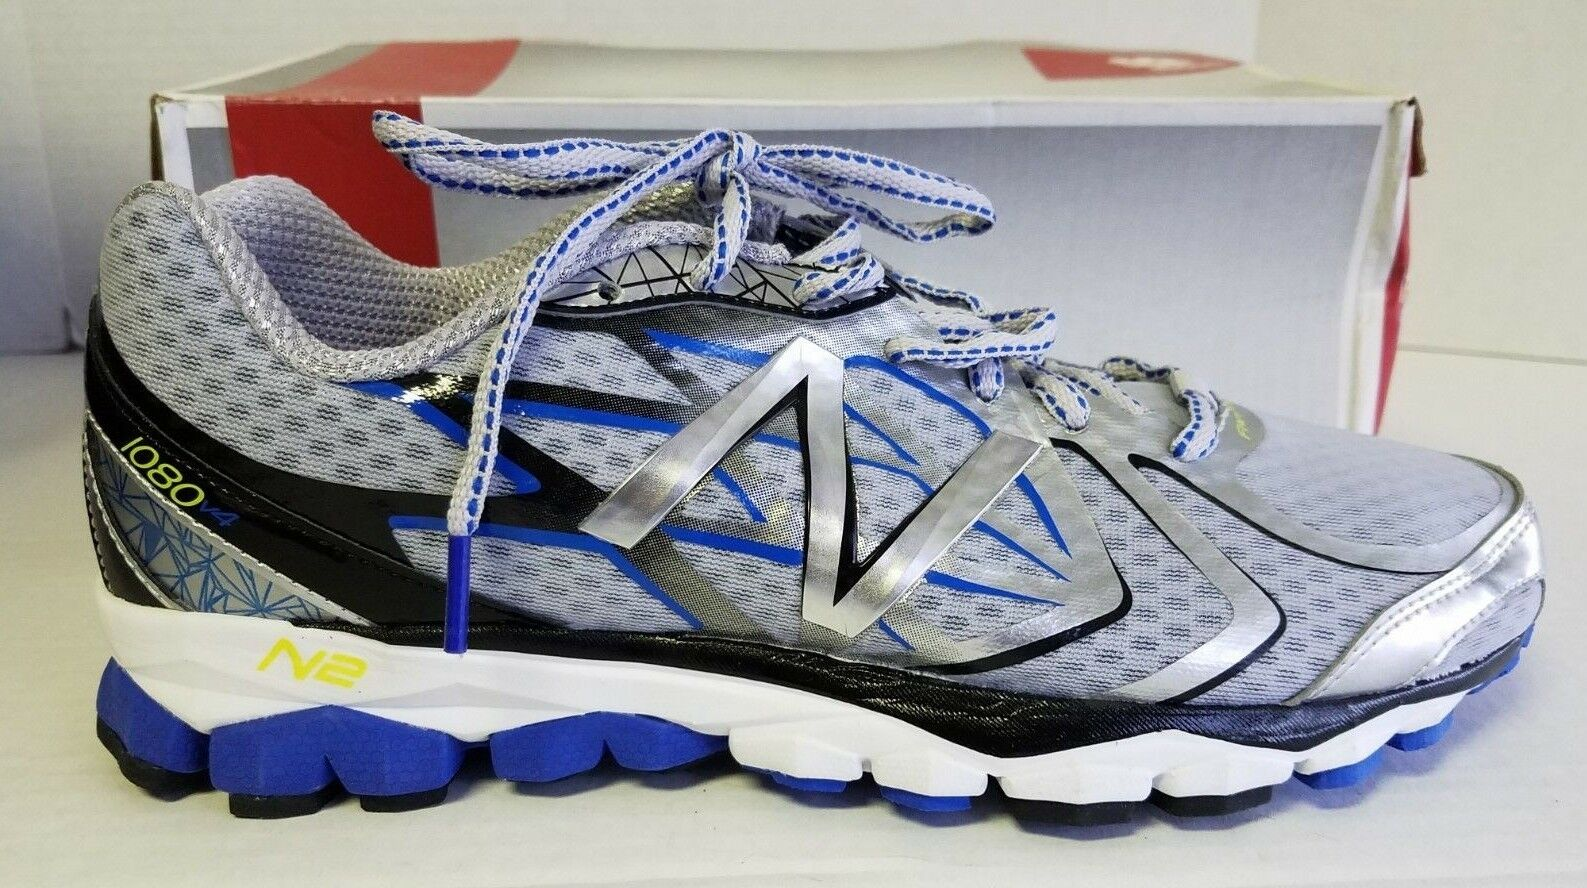 shoes Running V4 1080 Men's Balance New bluee Grey Large T